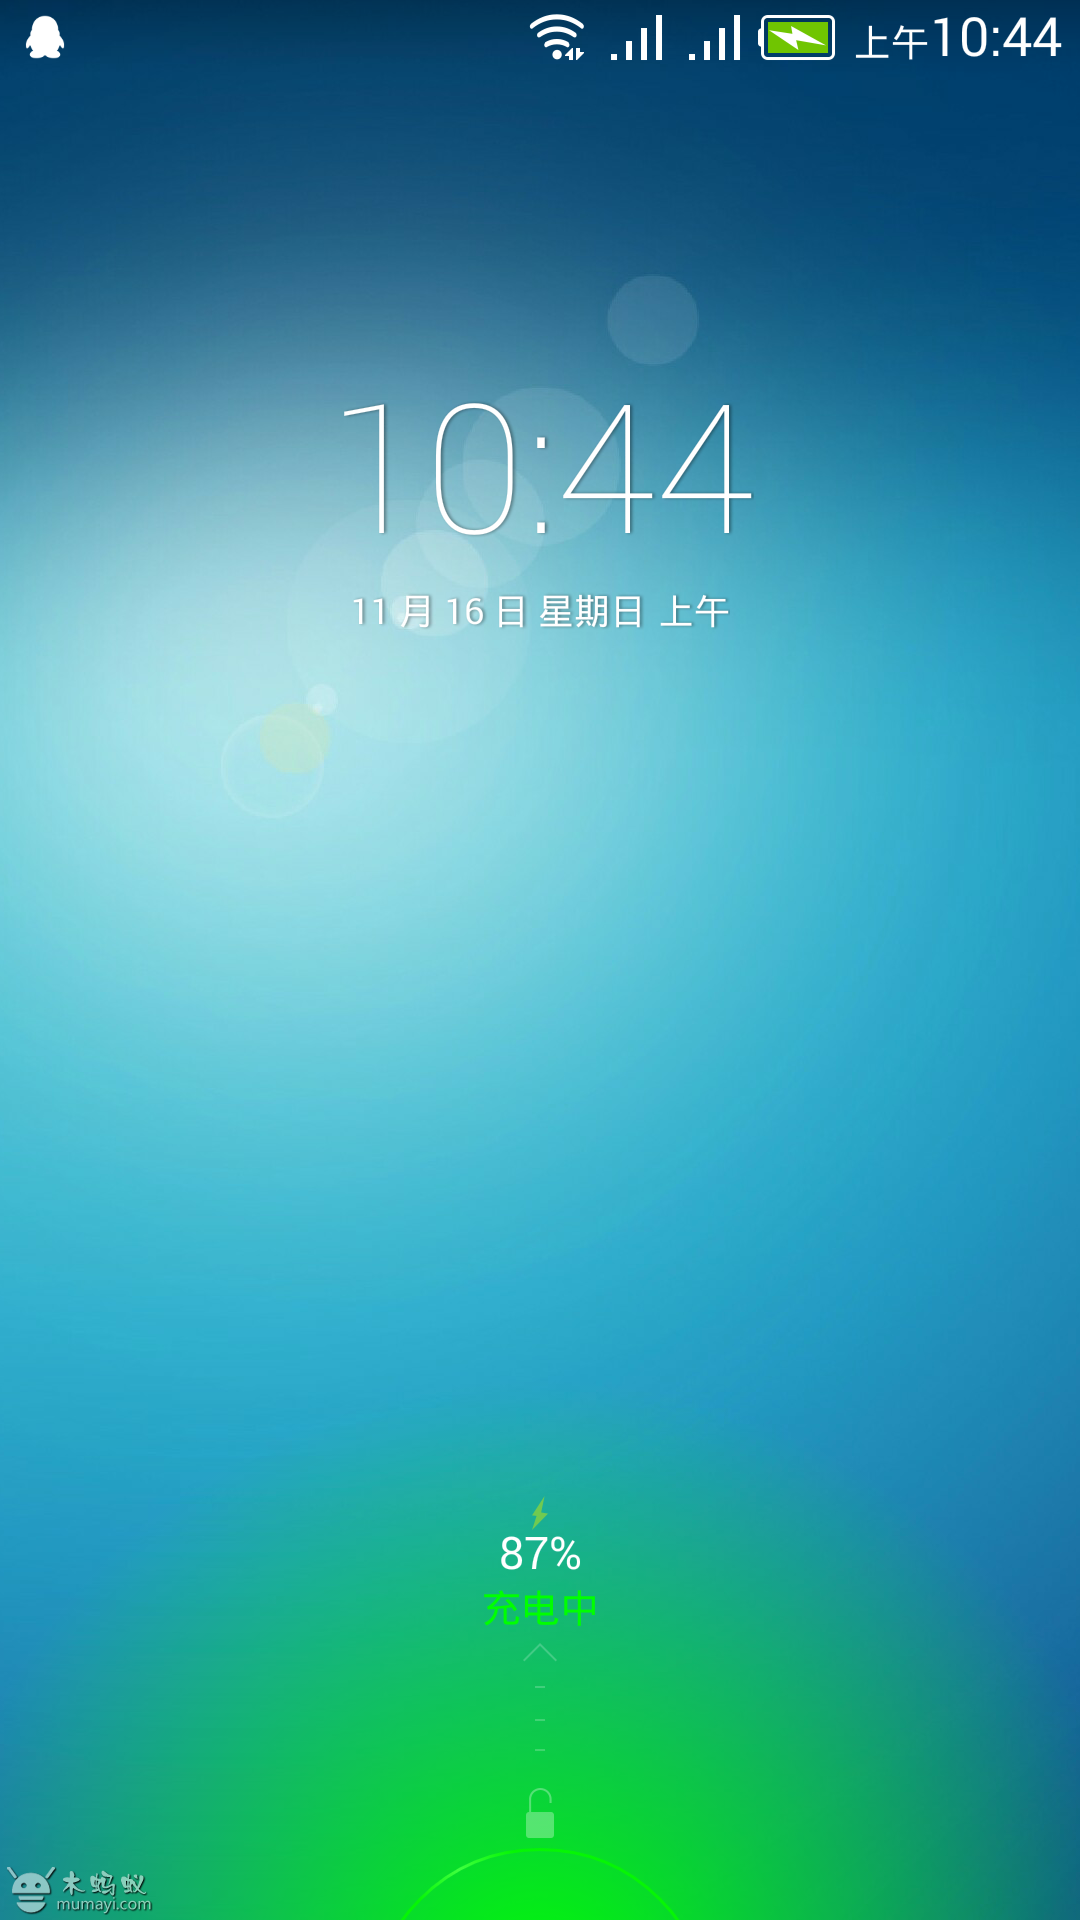 Screenshot_2014-11-16-10-44-08.png